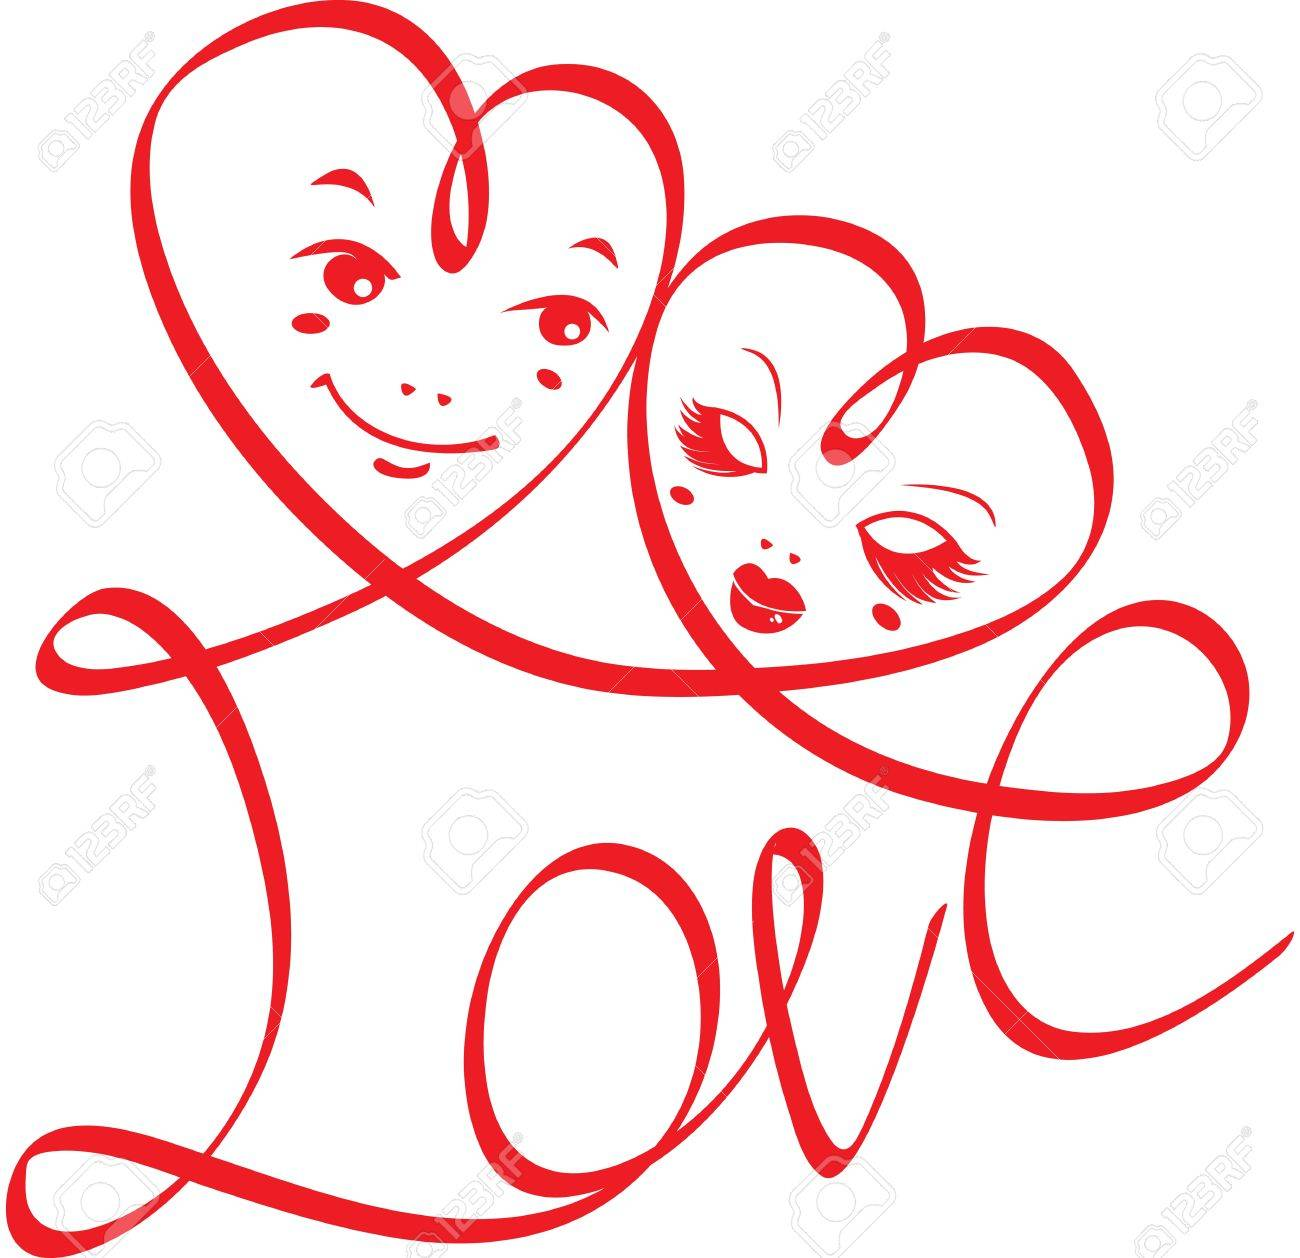 Word LOVE with hearts and funny faces isolated on white background. design for Valentine`s Day or Wedding invitation Stock Vector - 11142140